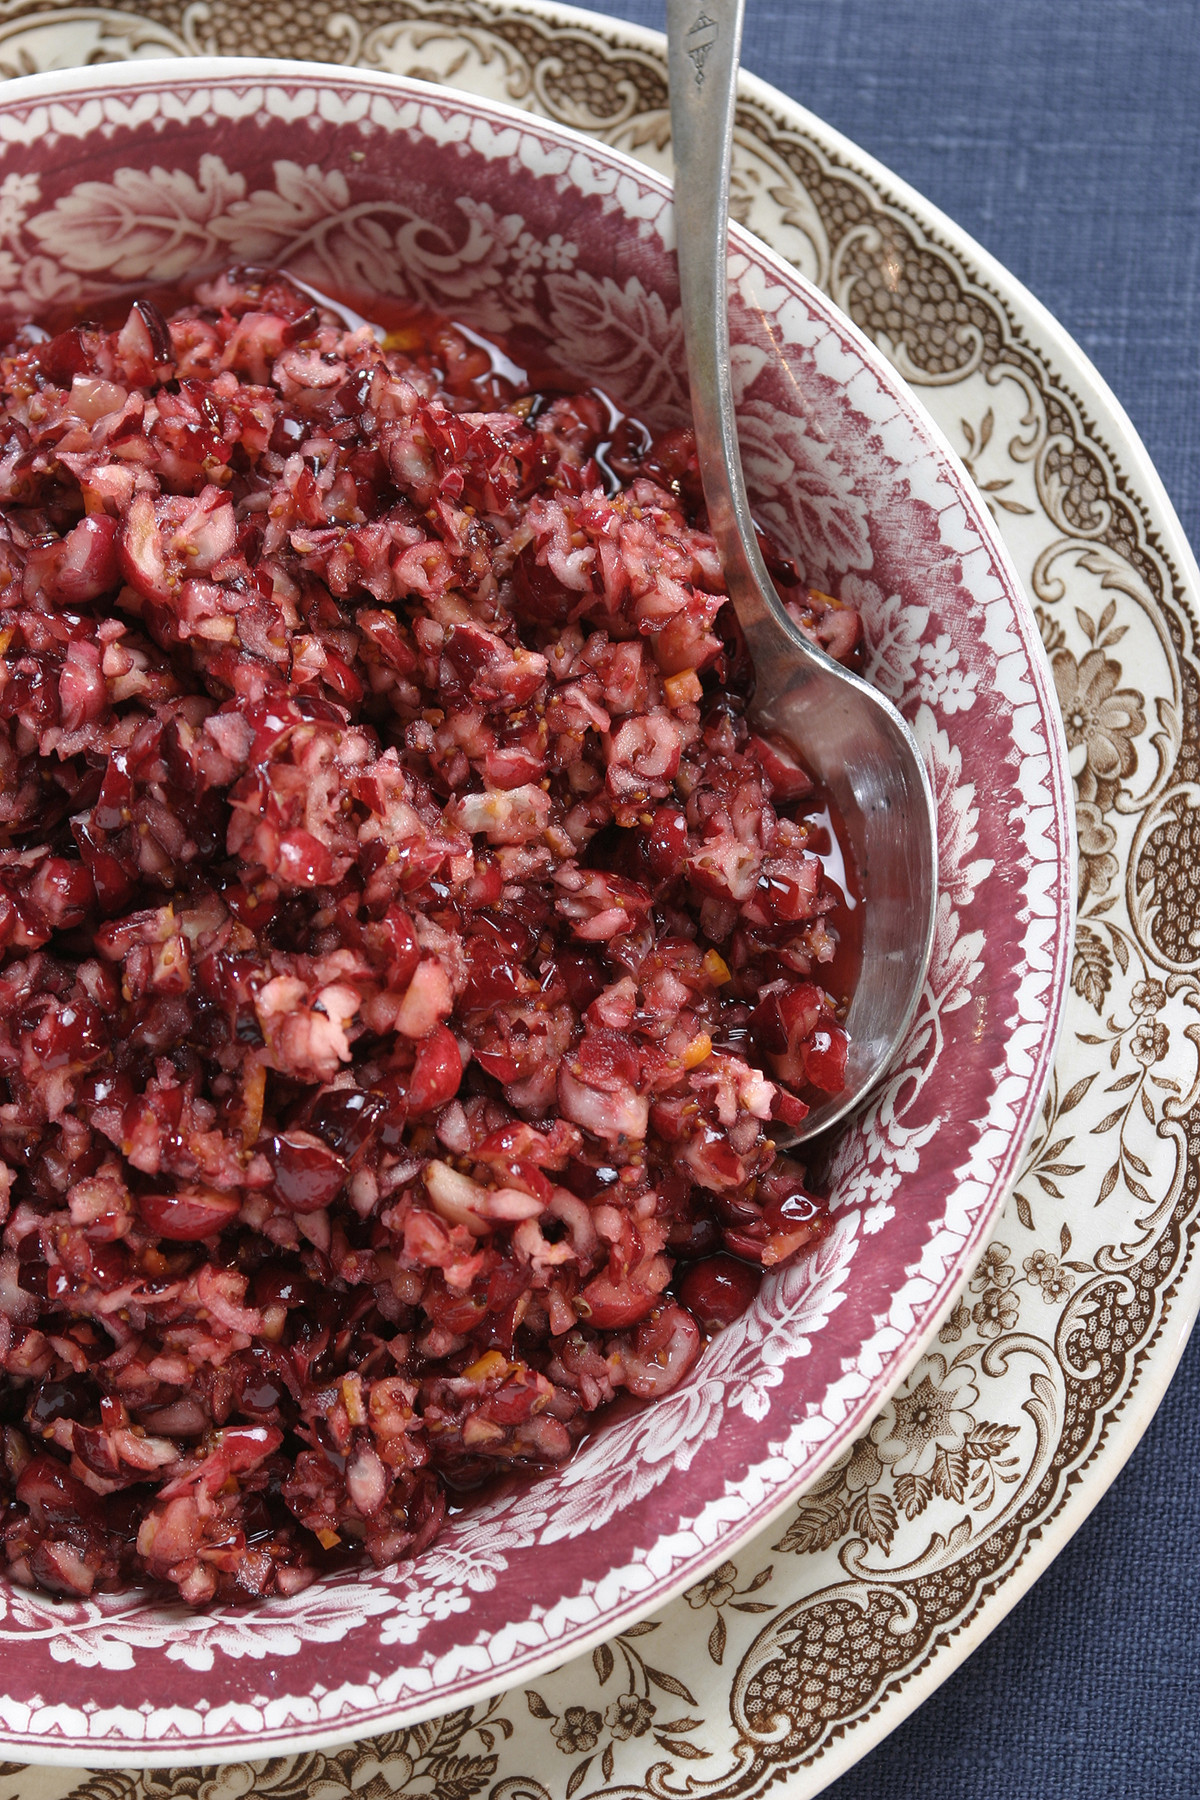 Photos: 97 great Thanksgiving recipes - Cranberry-tangerine relish